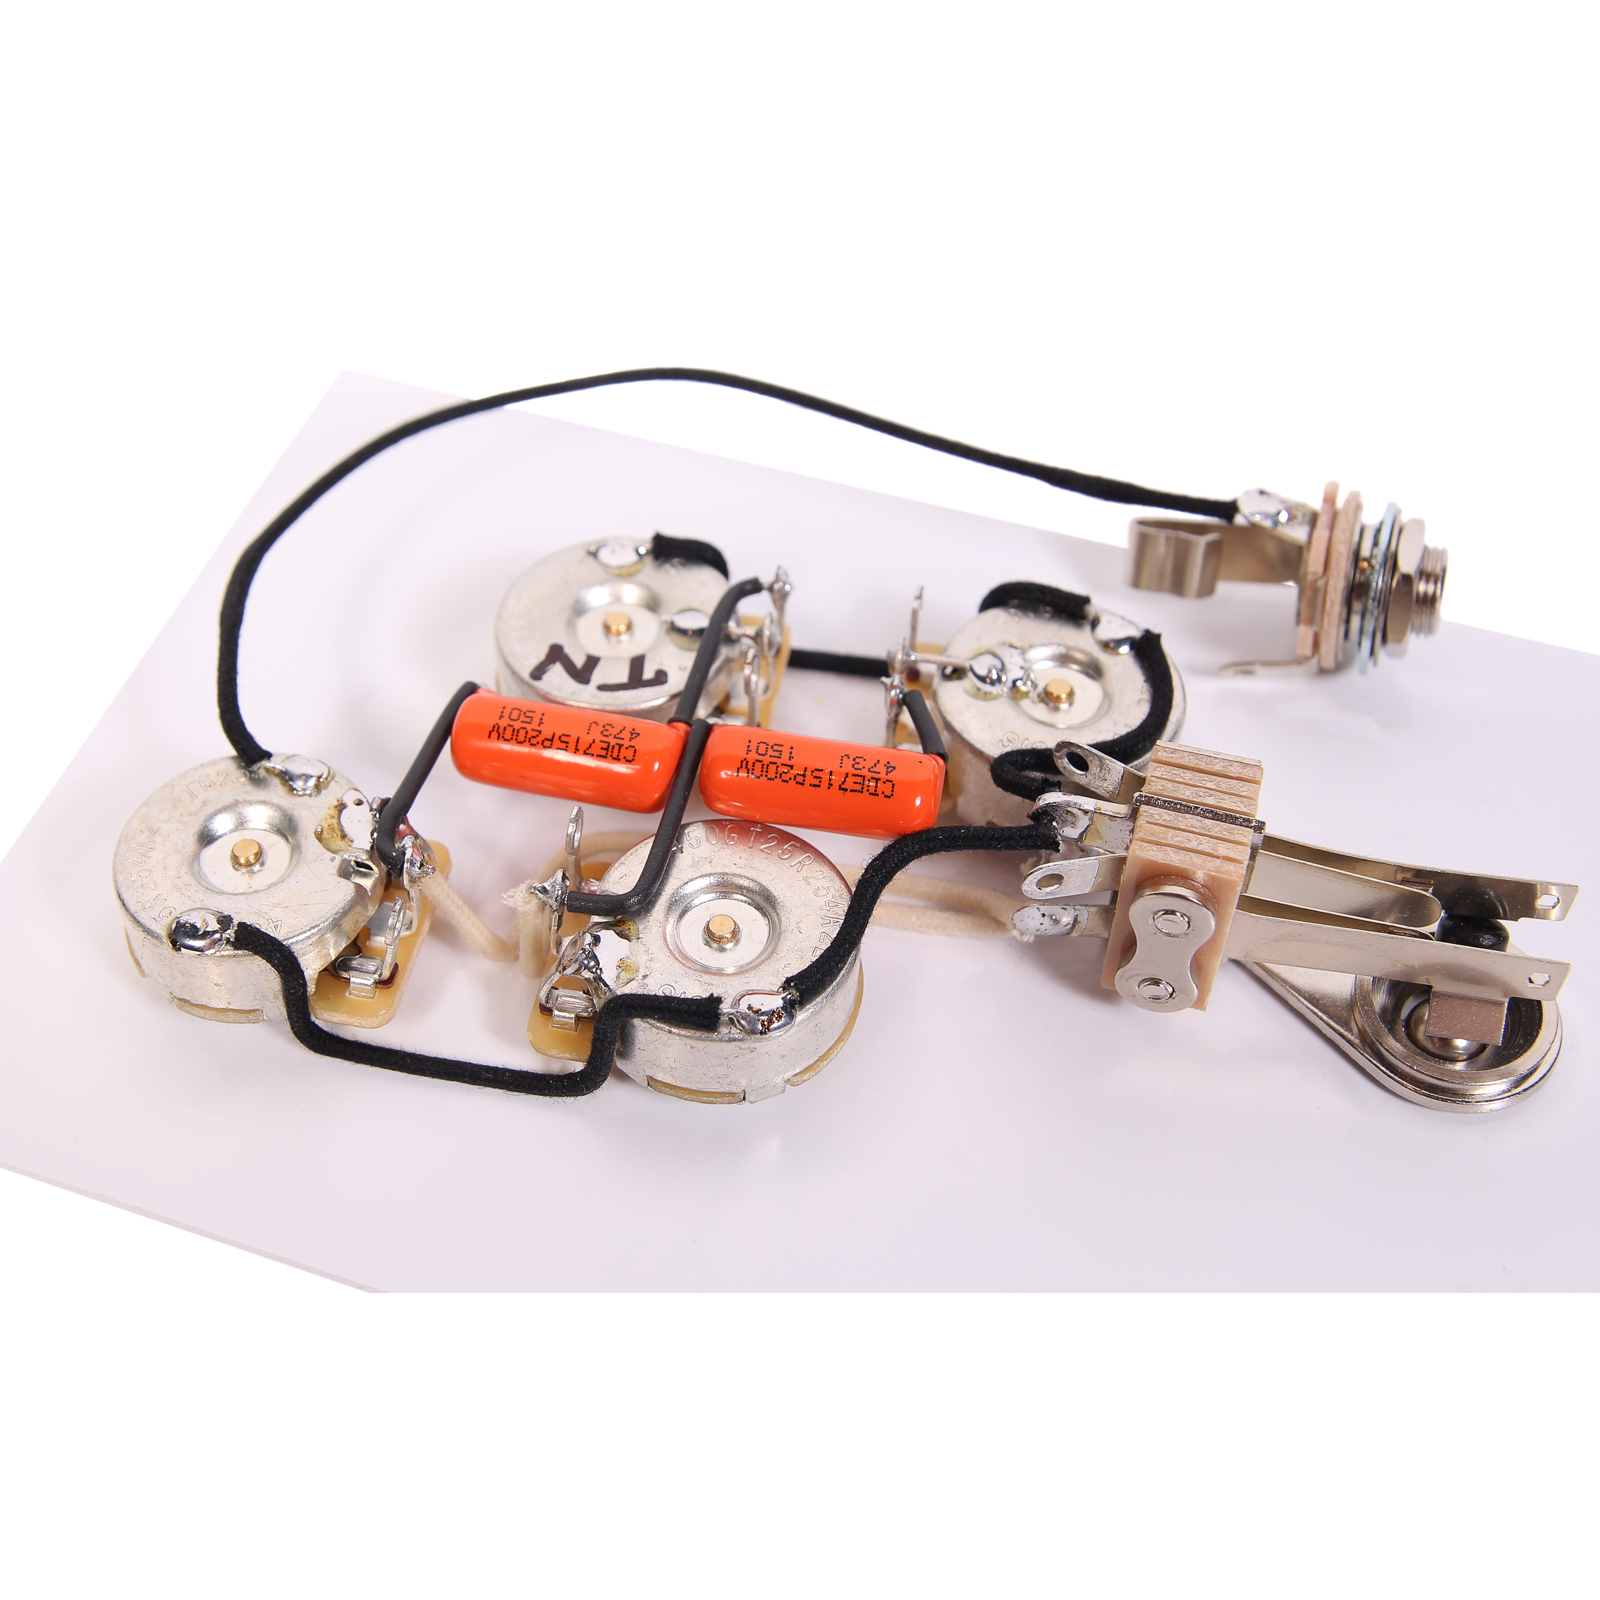 Duncan SRB-1 Pickup Set for Rickenbacker Bass Guitar + 920D RIC-B Wiring  Harness - Walmart.com